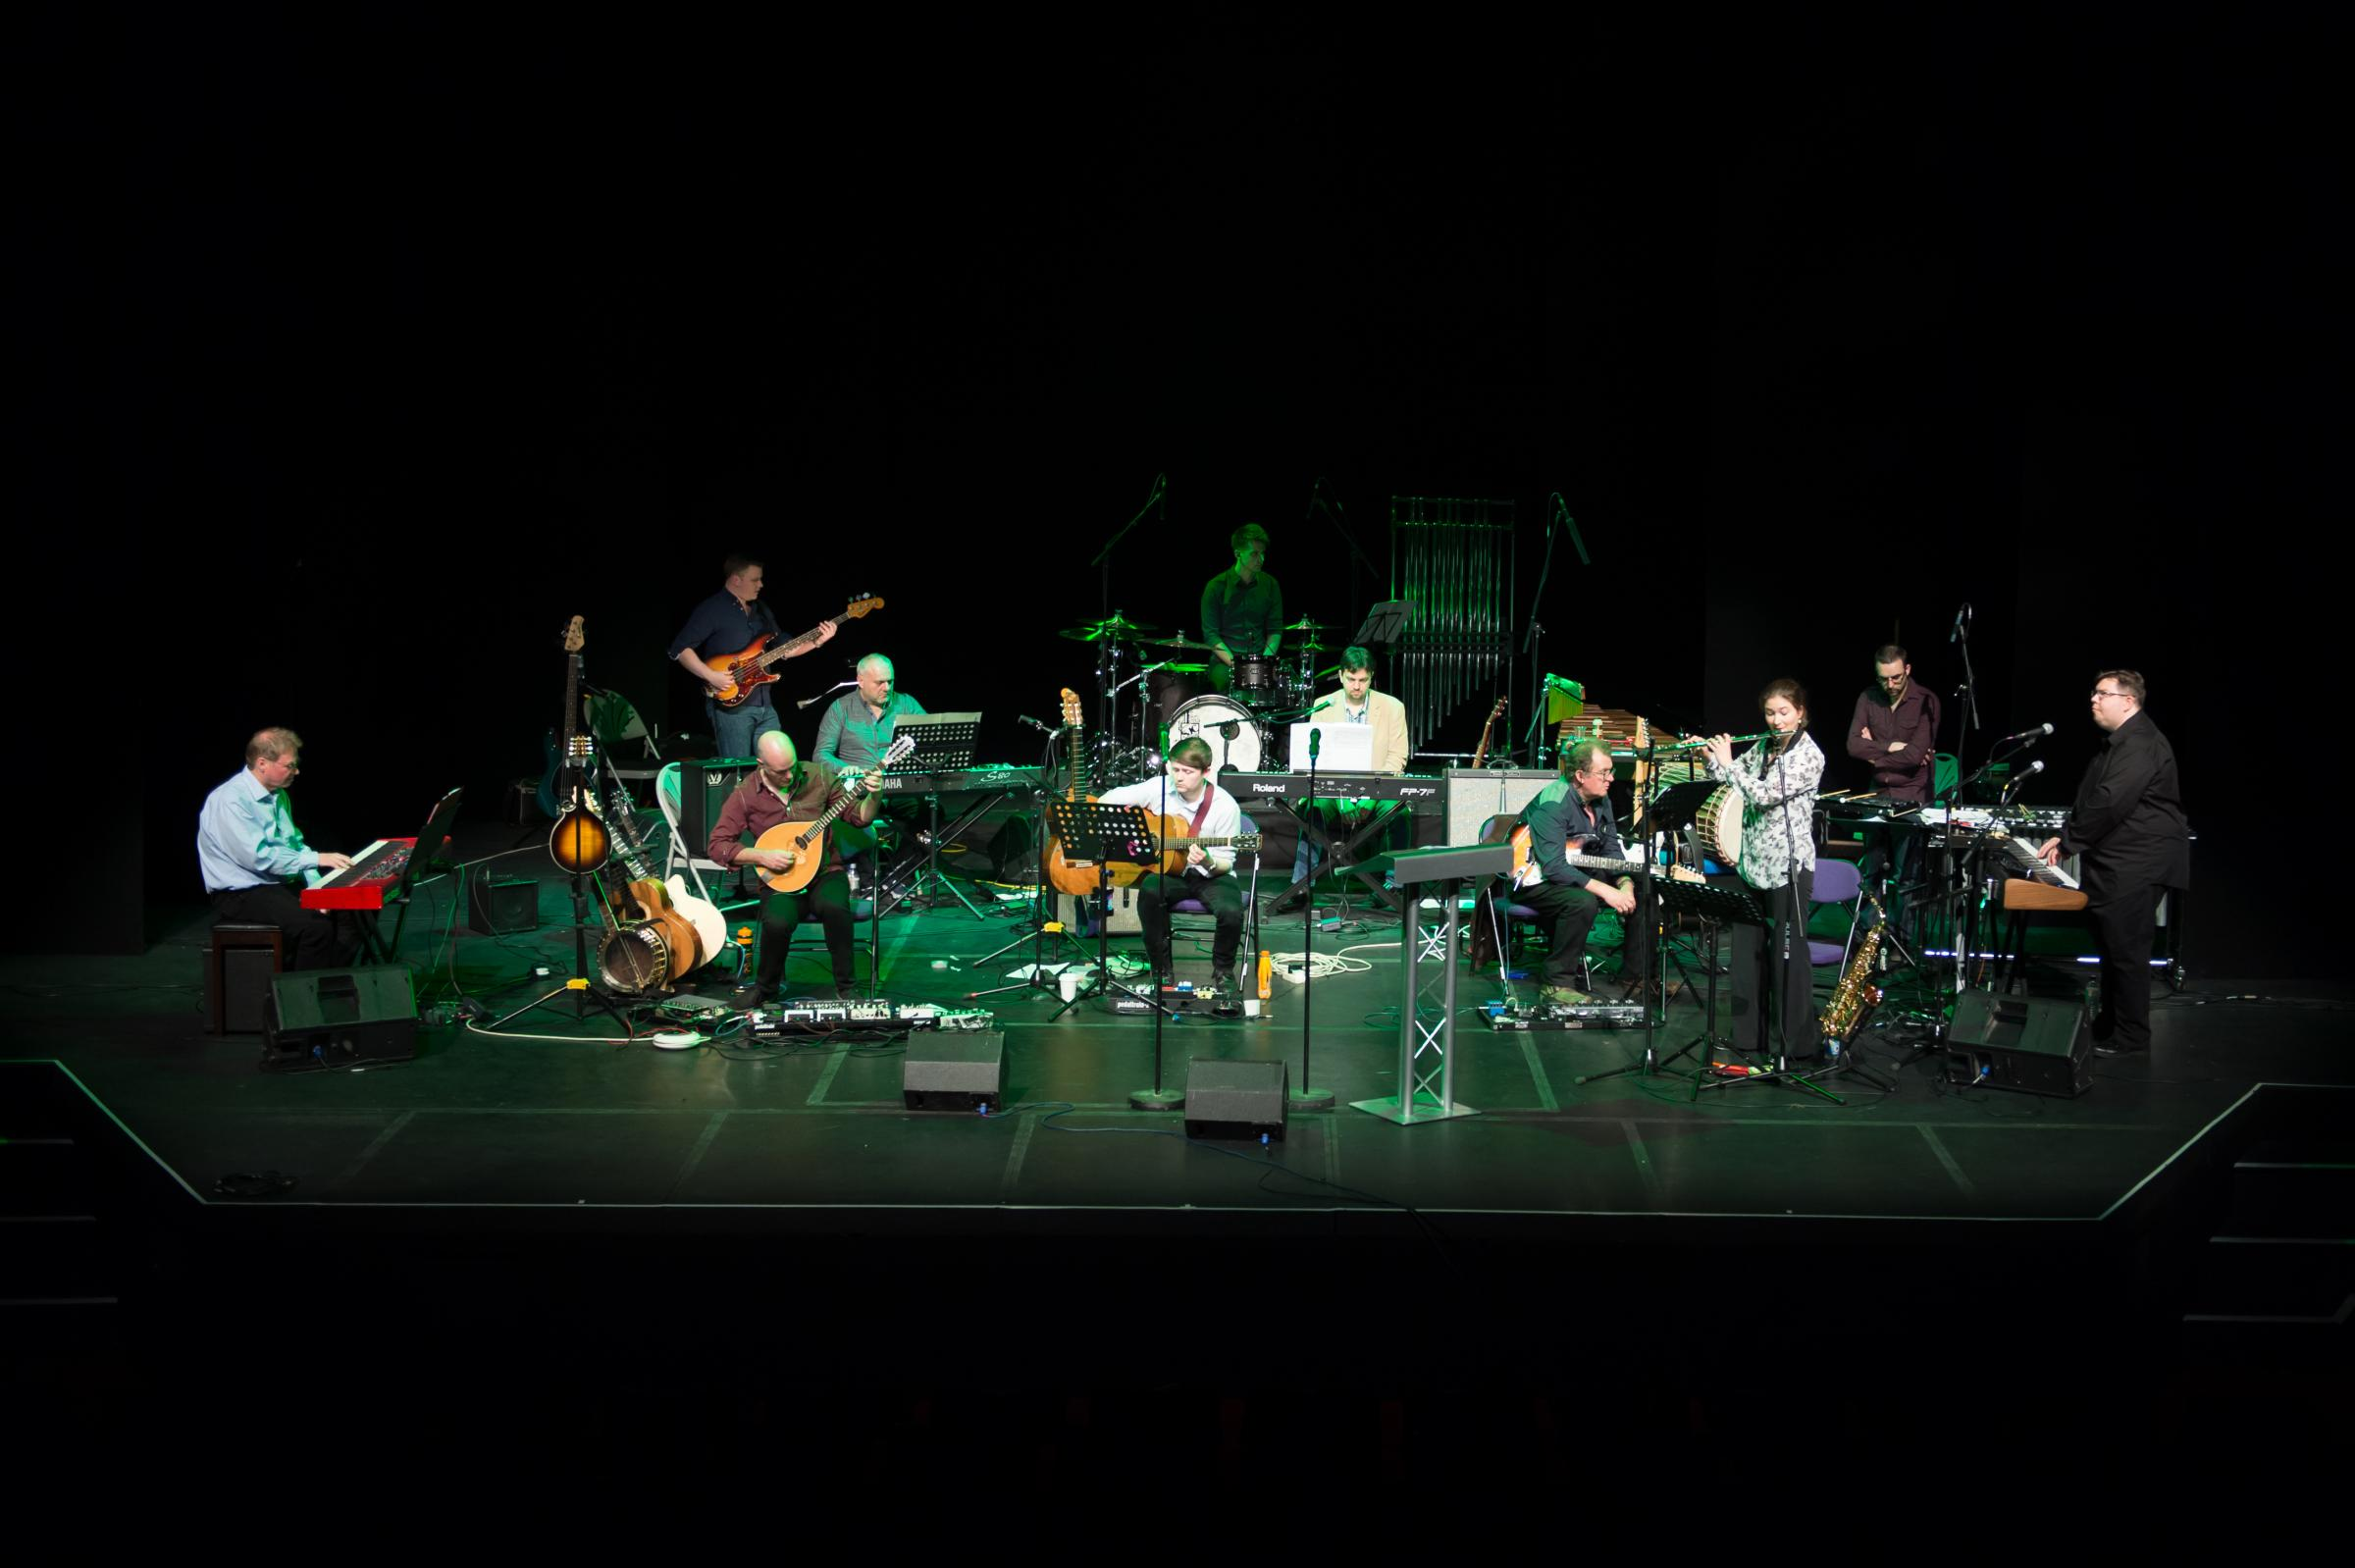 Phil Toms with his orchestra for the Tubular Bells concert at the Mercury Theatre - Photo by Henrik Colding Nieman.